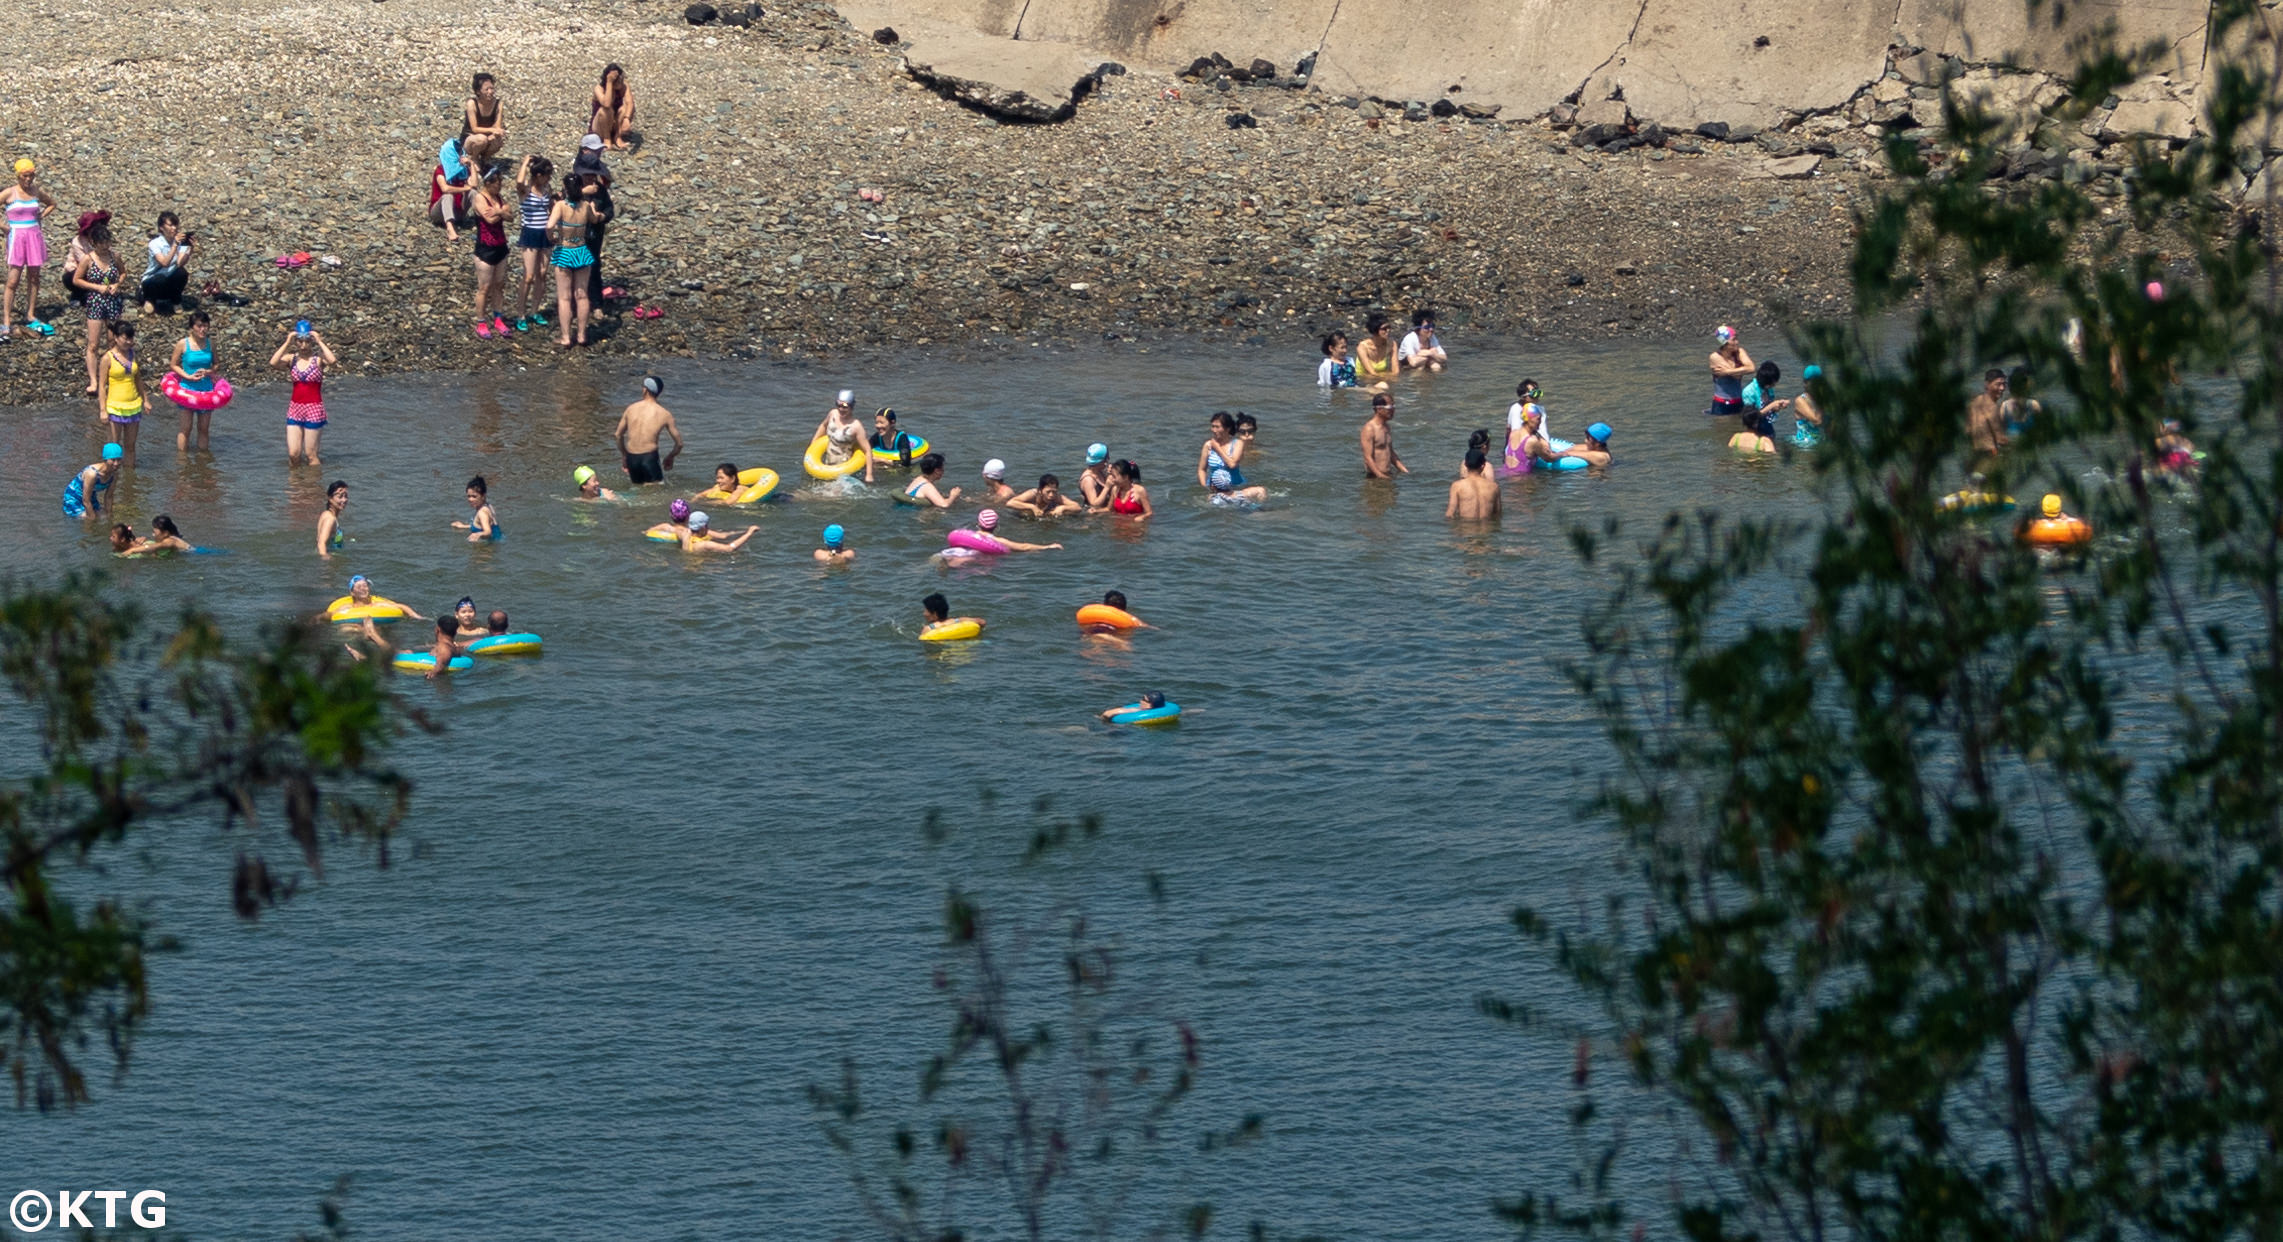 North Koreans swimming in the sea and enjoying a day at the beach in Nampo city. Picture taken by KTG tours